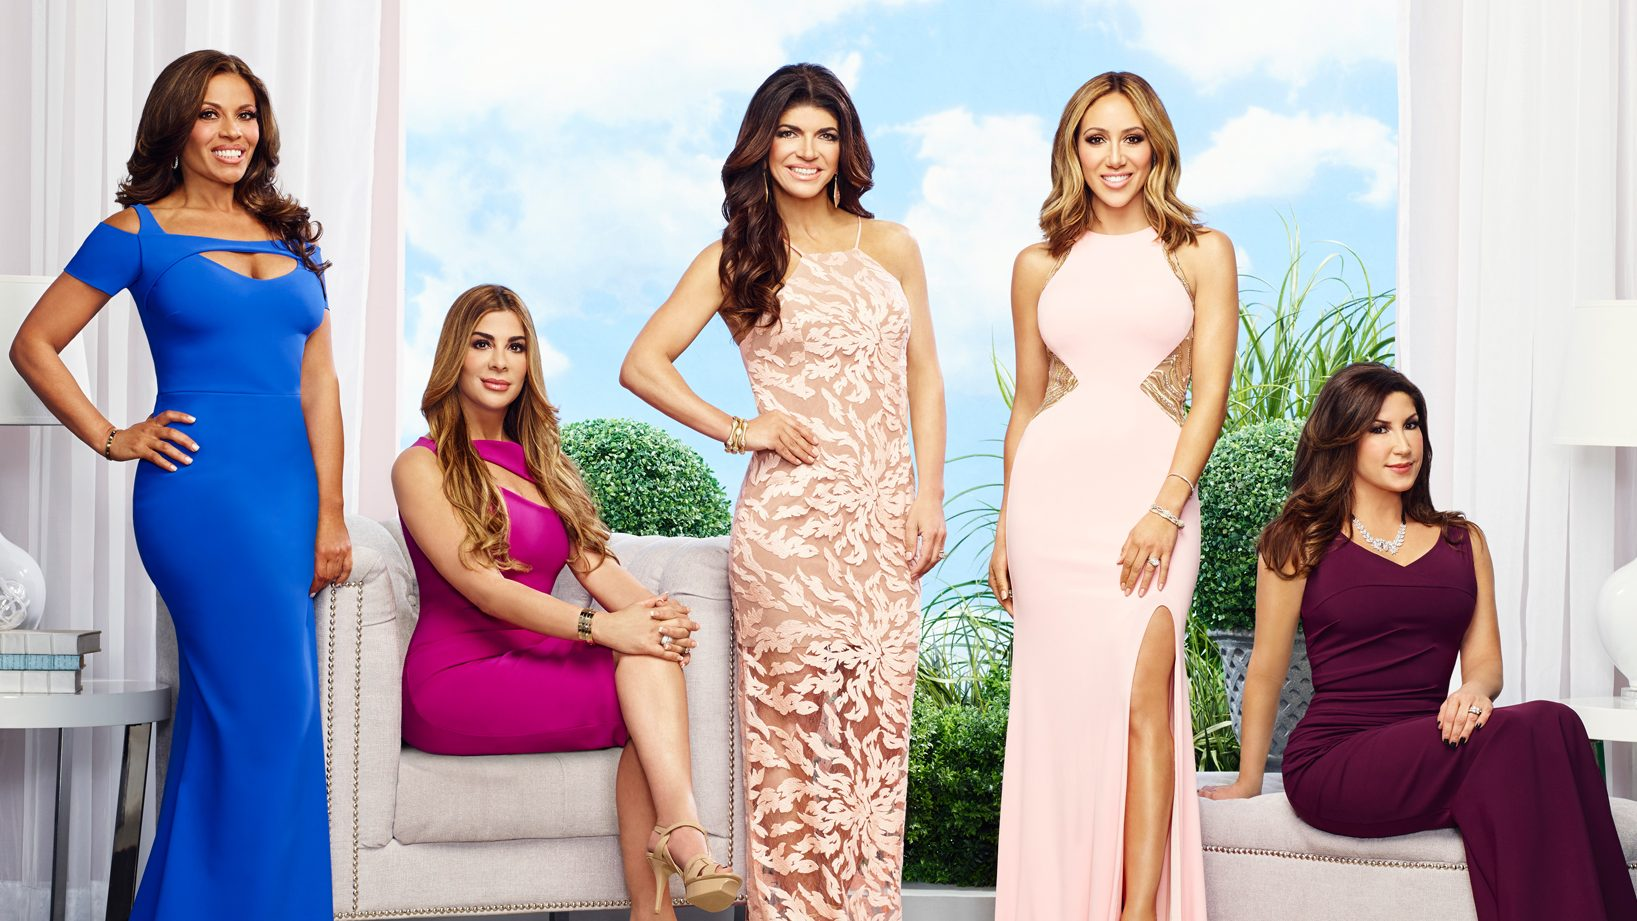 When Does The Real Housewives of New Jersey Season 9 Start? Bravo Release Date